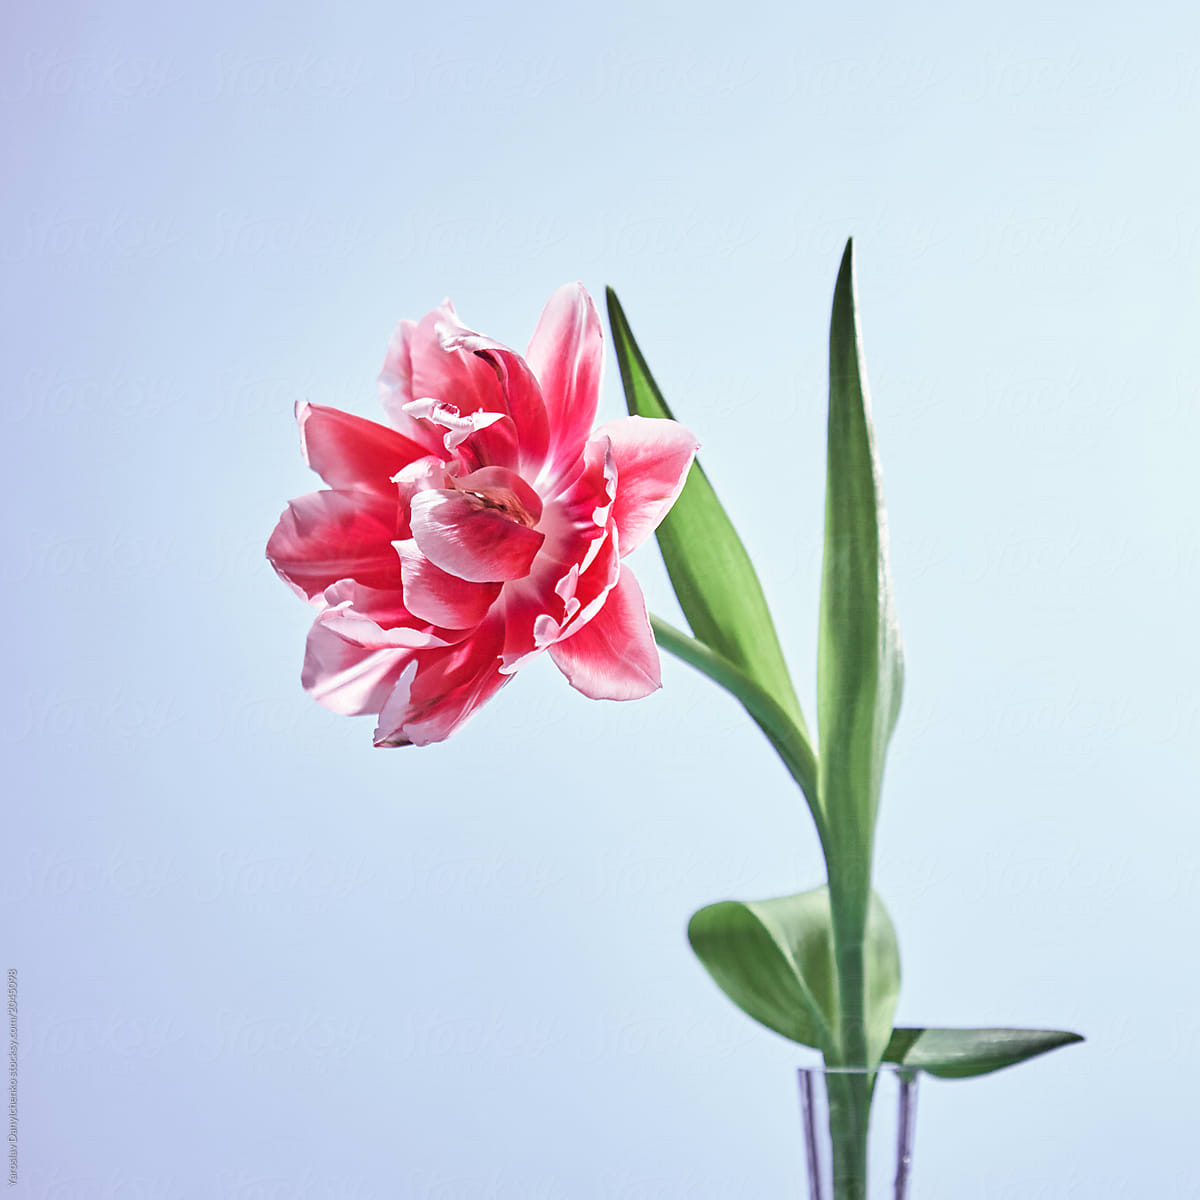 Flowering Single Terry Tulip Flower Pink With Green Leaves In Gl